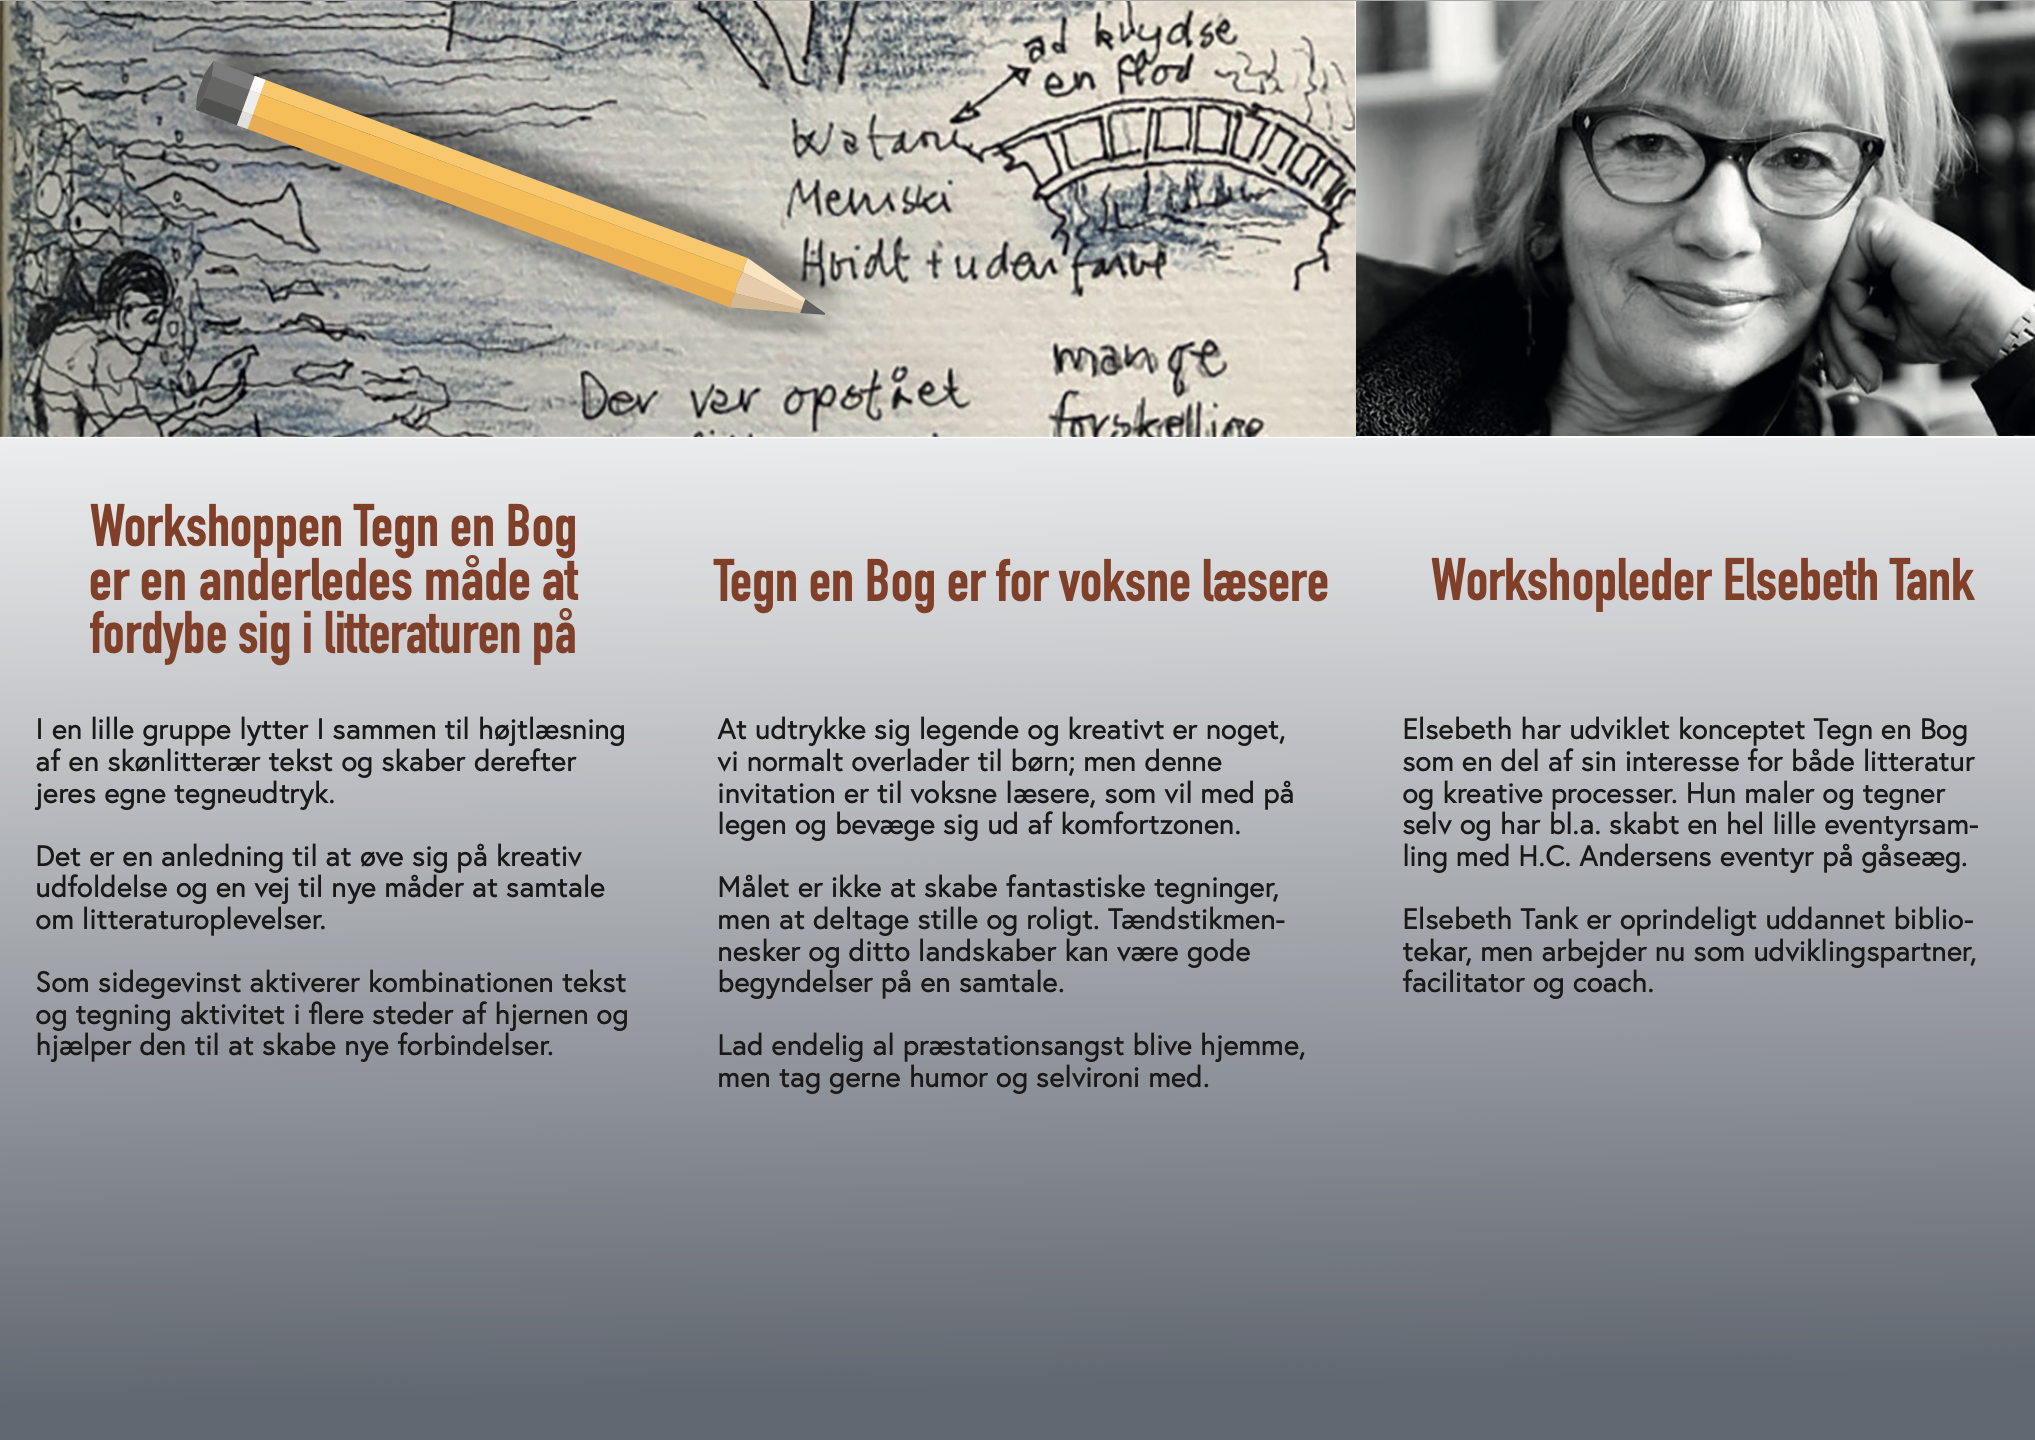 Fra program for tegn en bog workshops i Farum i november